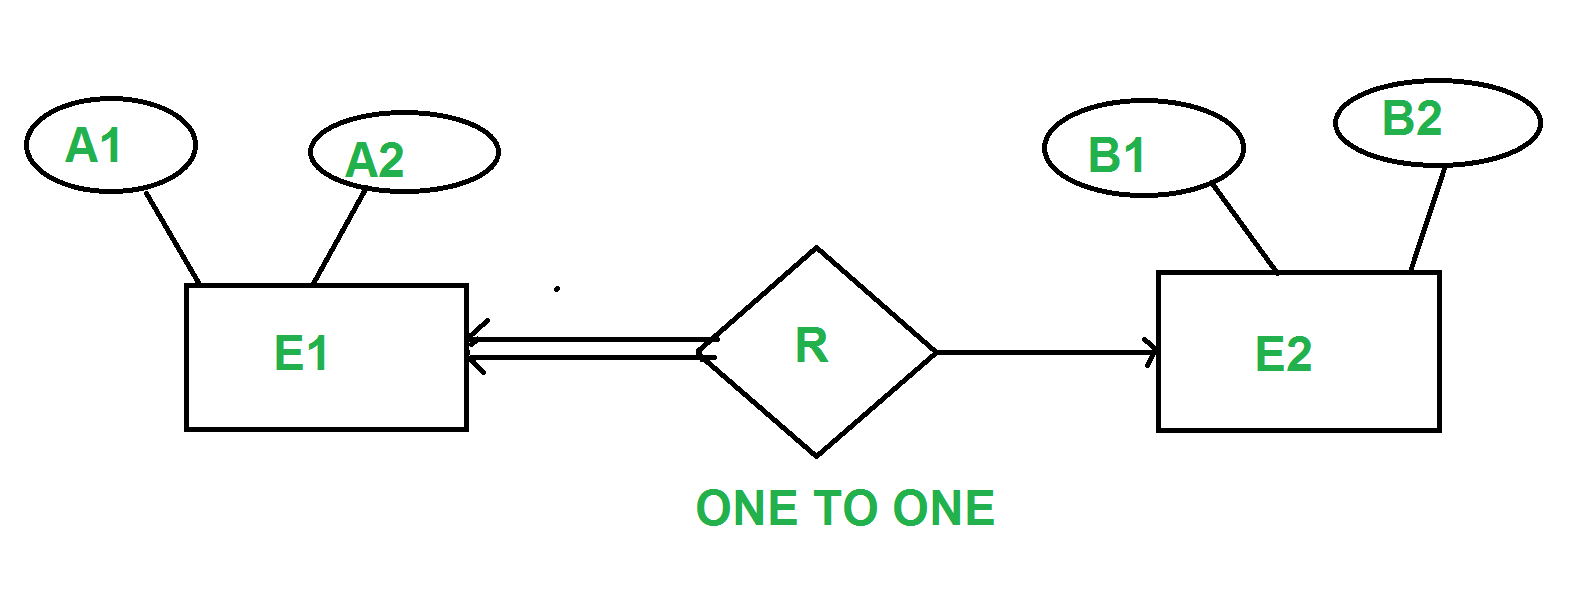 hight resolution of for example consider the below er diagram one2onet